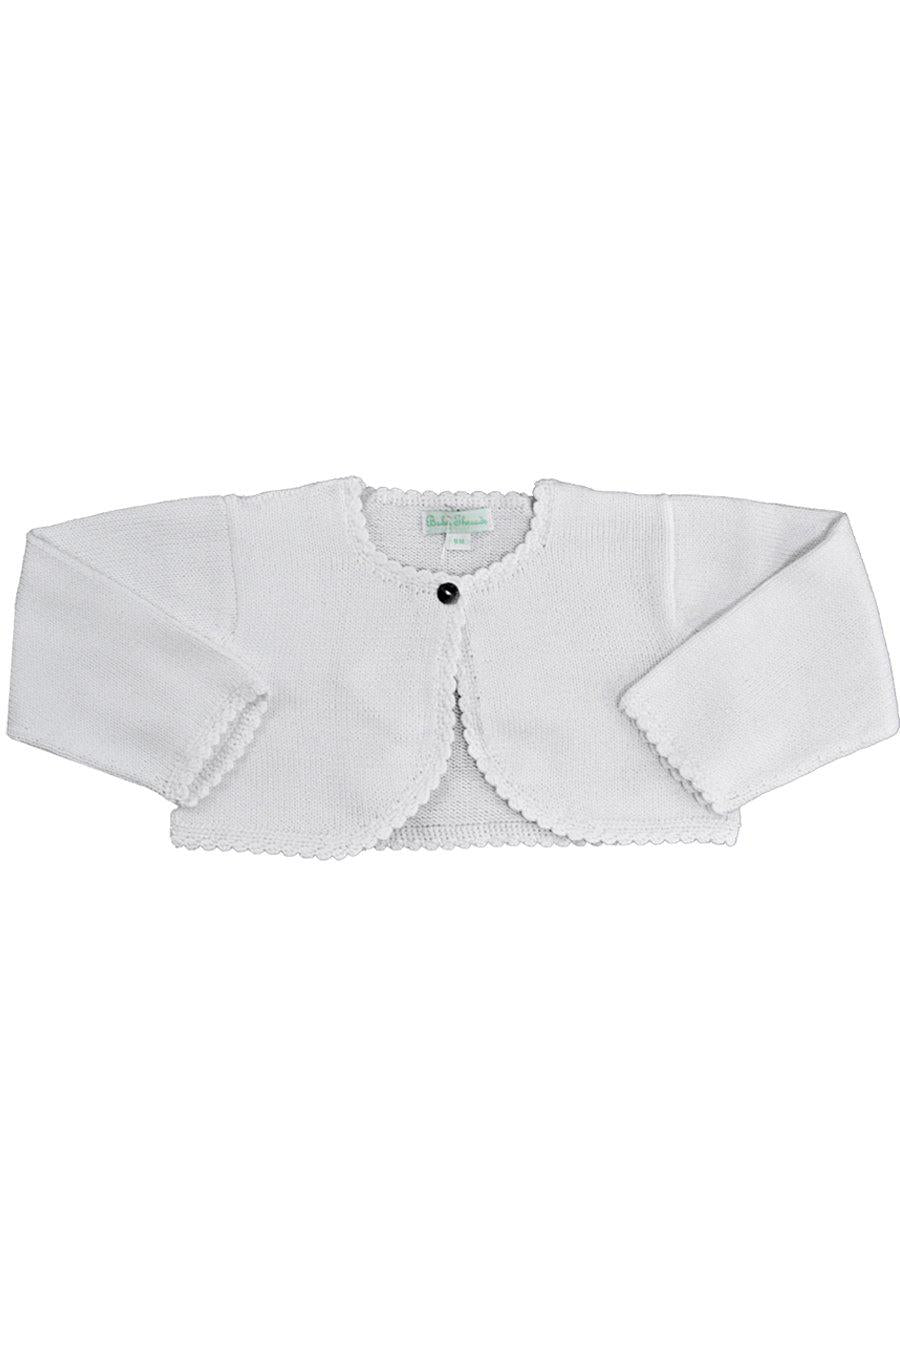 White Mercerized Cotton Knitted Baby Cardigan - Little Threads Inc. Children's Clothing